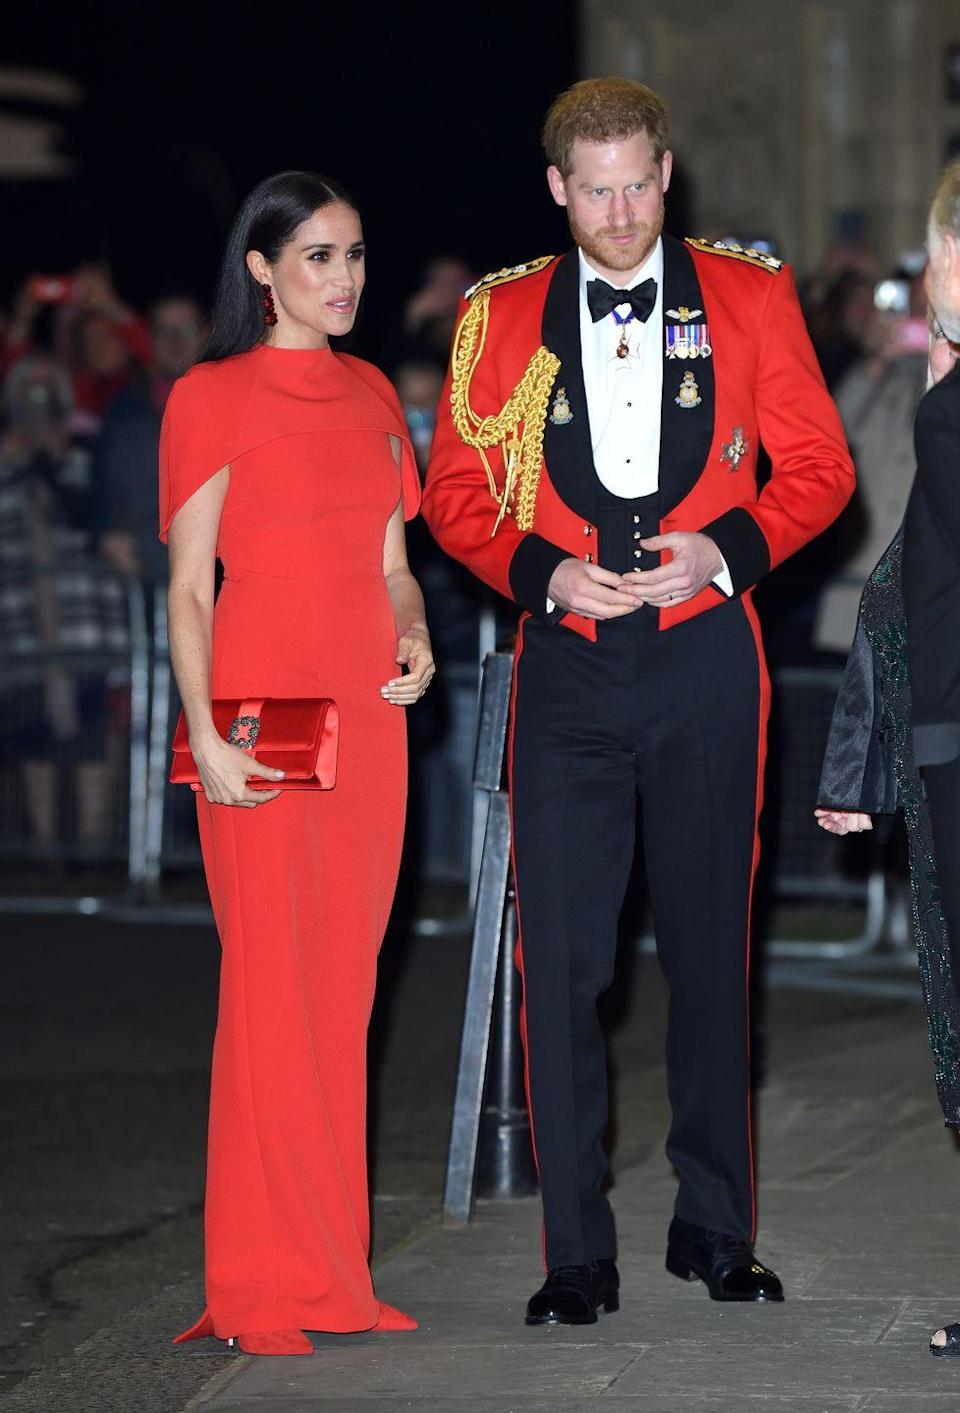 "<p><a href=""https://www.townandcountrymag.com/society/tradition/a31262662/meghan-markle-red-gown-mountbatten-music-festival-photos/"" rel=""nofollow noopener"" target=""_blank"" data-ylk=""slk:Meghan attended the Mountbatten Music Festival alongside Prince Harry"" class=""link rapid-noclick-resp"">Meghan attended the Mountbatten Music Festival alongside Prince Harry</a>, wearing a chic all-red look. The dress was reportedly from Safiyaa, which the Duchess wore with Aquazzura shoes, a Manolo Blahnik clutch, and Simone Rocha earrings. </p>"